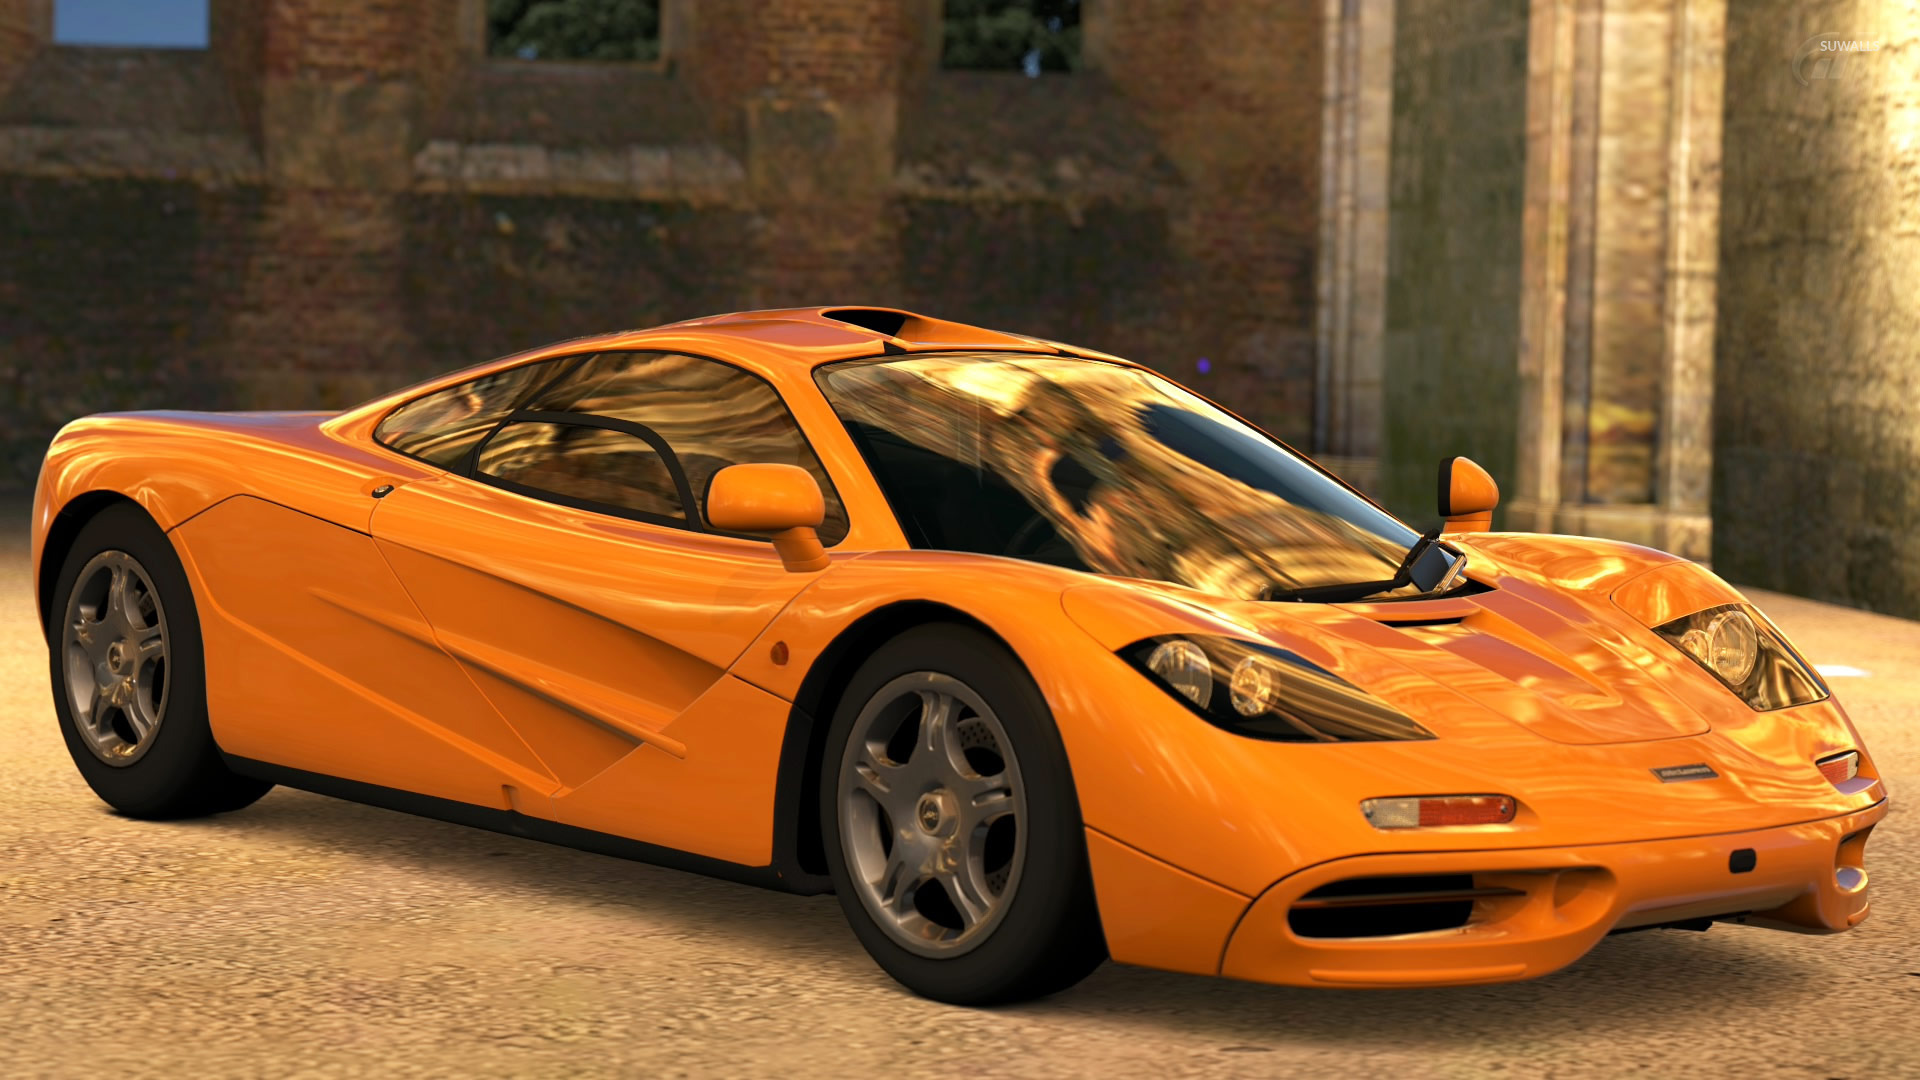 Mclaren F1 4K Wallpaper  HD Car Wallpapers  ID 8072